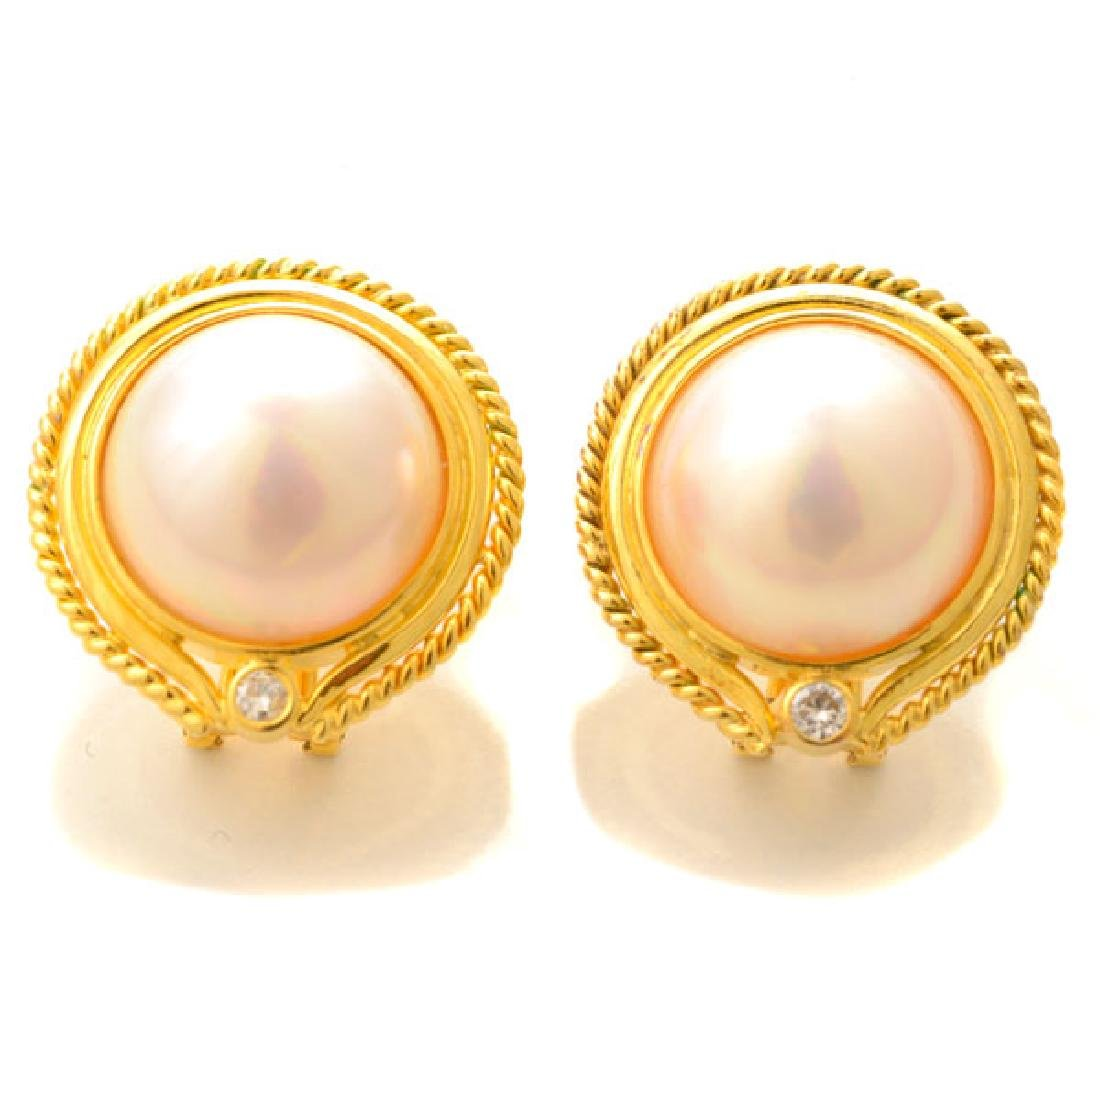 Pair of Mabe Cultured Pearl, Diamond, 14k Yellow Gold